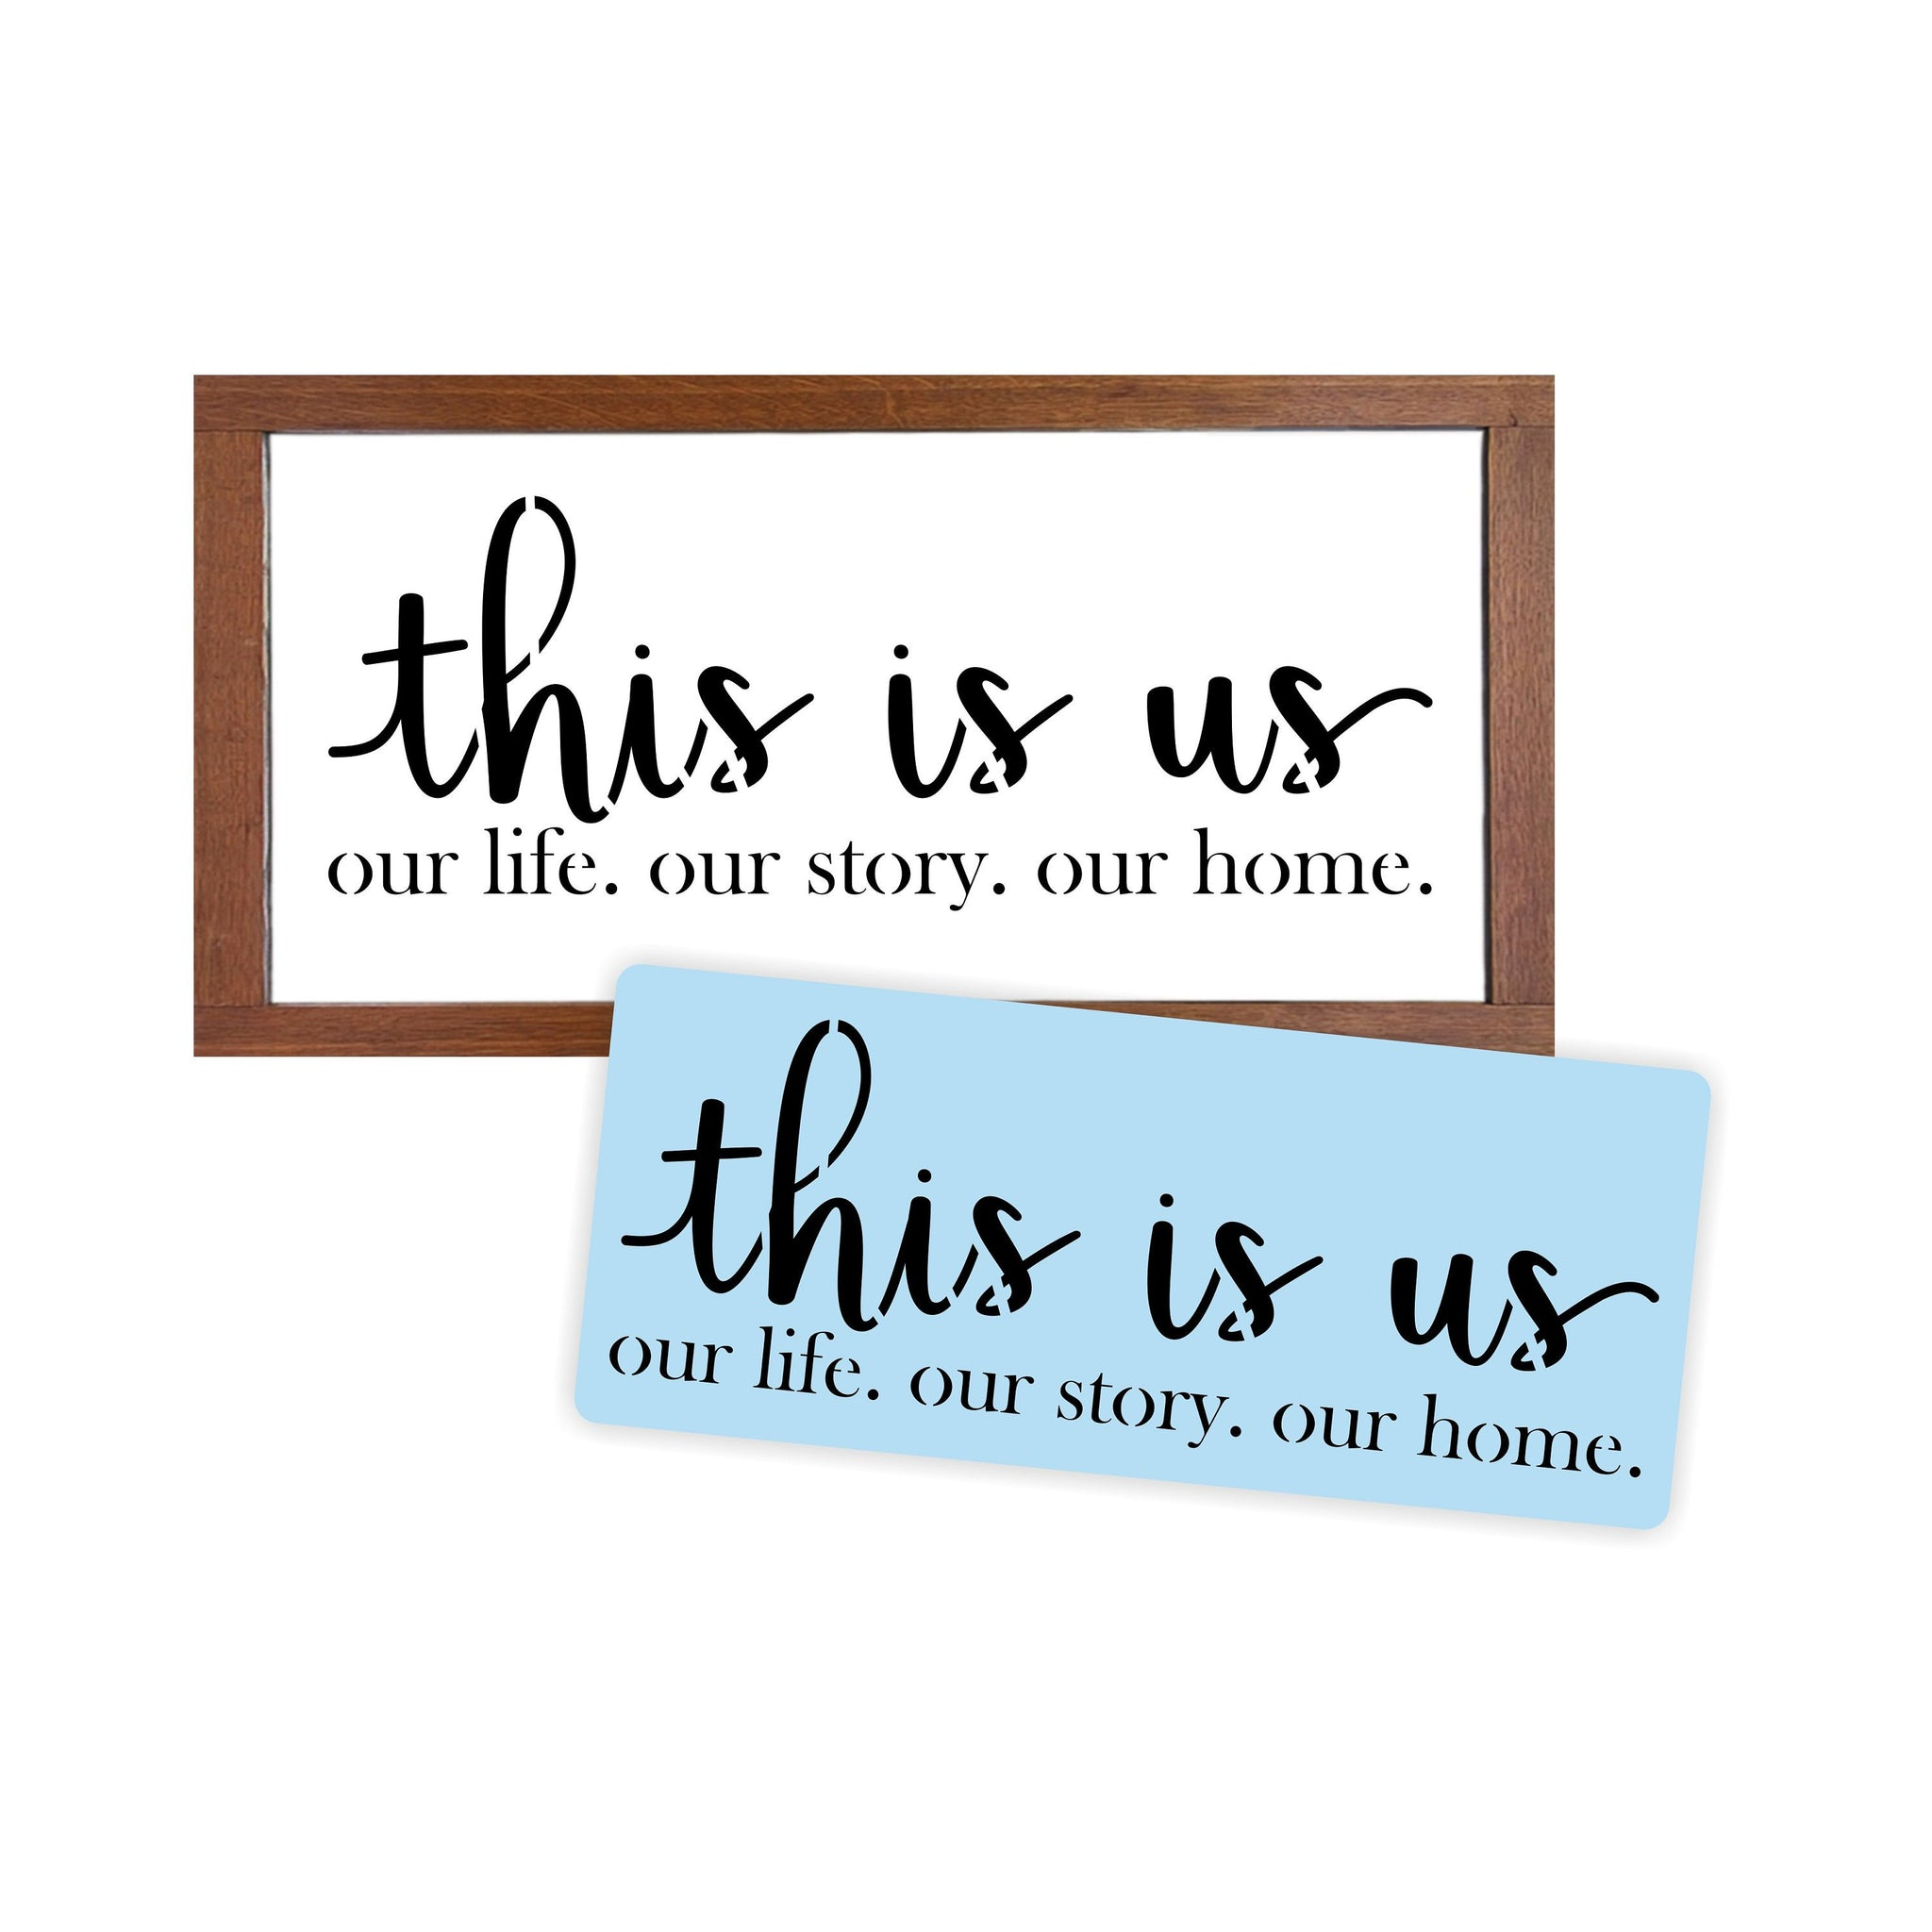 This is Us Stencil, Our Life Our Story Our Home, Sign Painting, Bathroom Home Decor, Paint Your Own Sign, 14 Mil Reusable